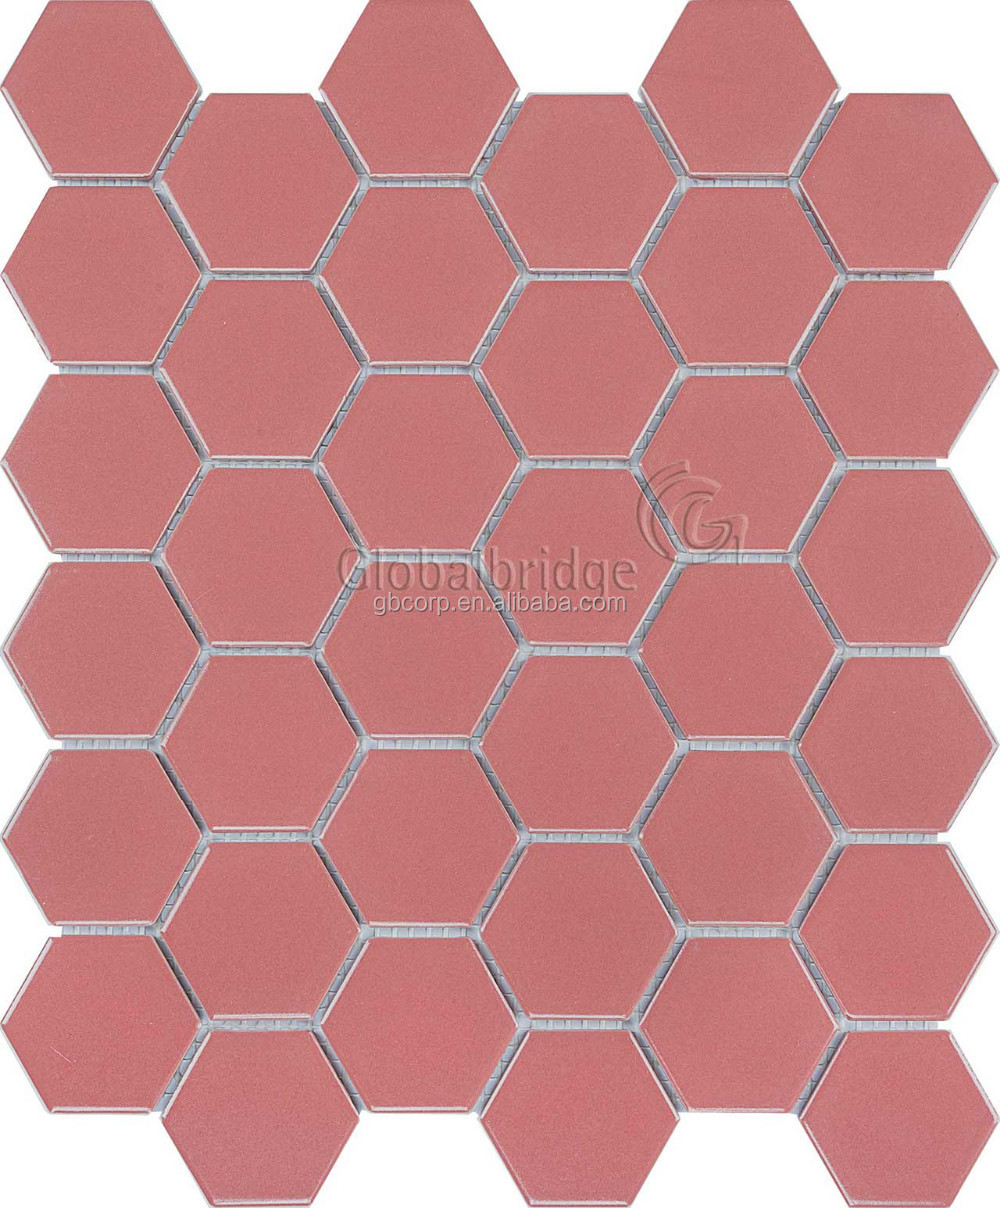 Pink ceramic floor tiles pink ceramic floor tiles suppliers and pink ceramic floor tiles pink ceramic floor tiles suppliers and manufacturers at alibaba dailygadgetfo Image collections